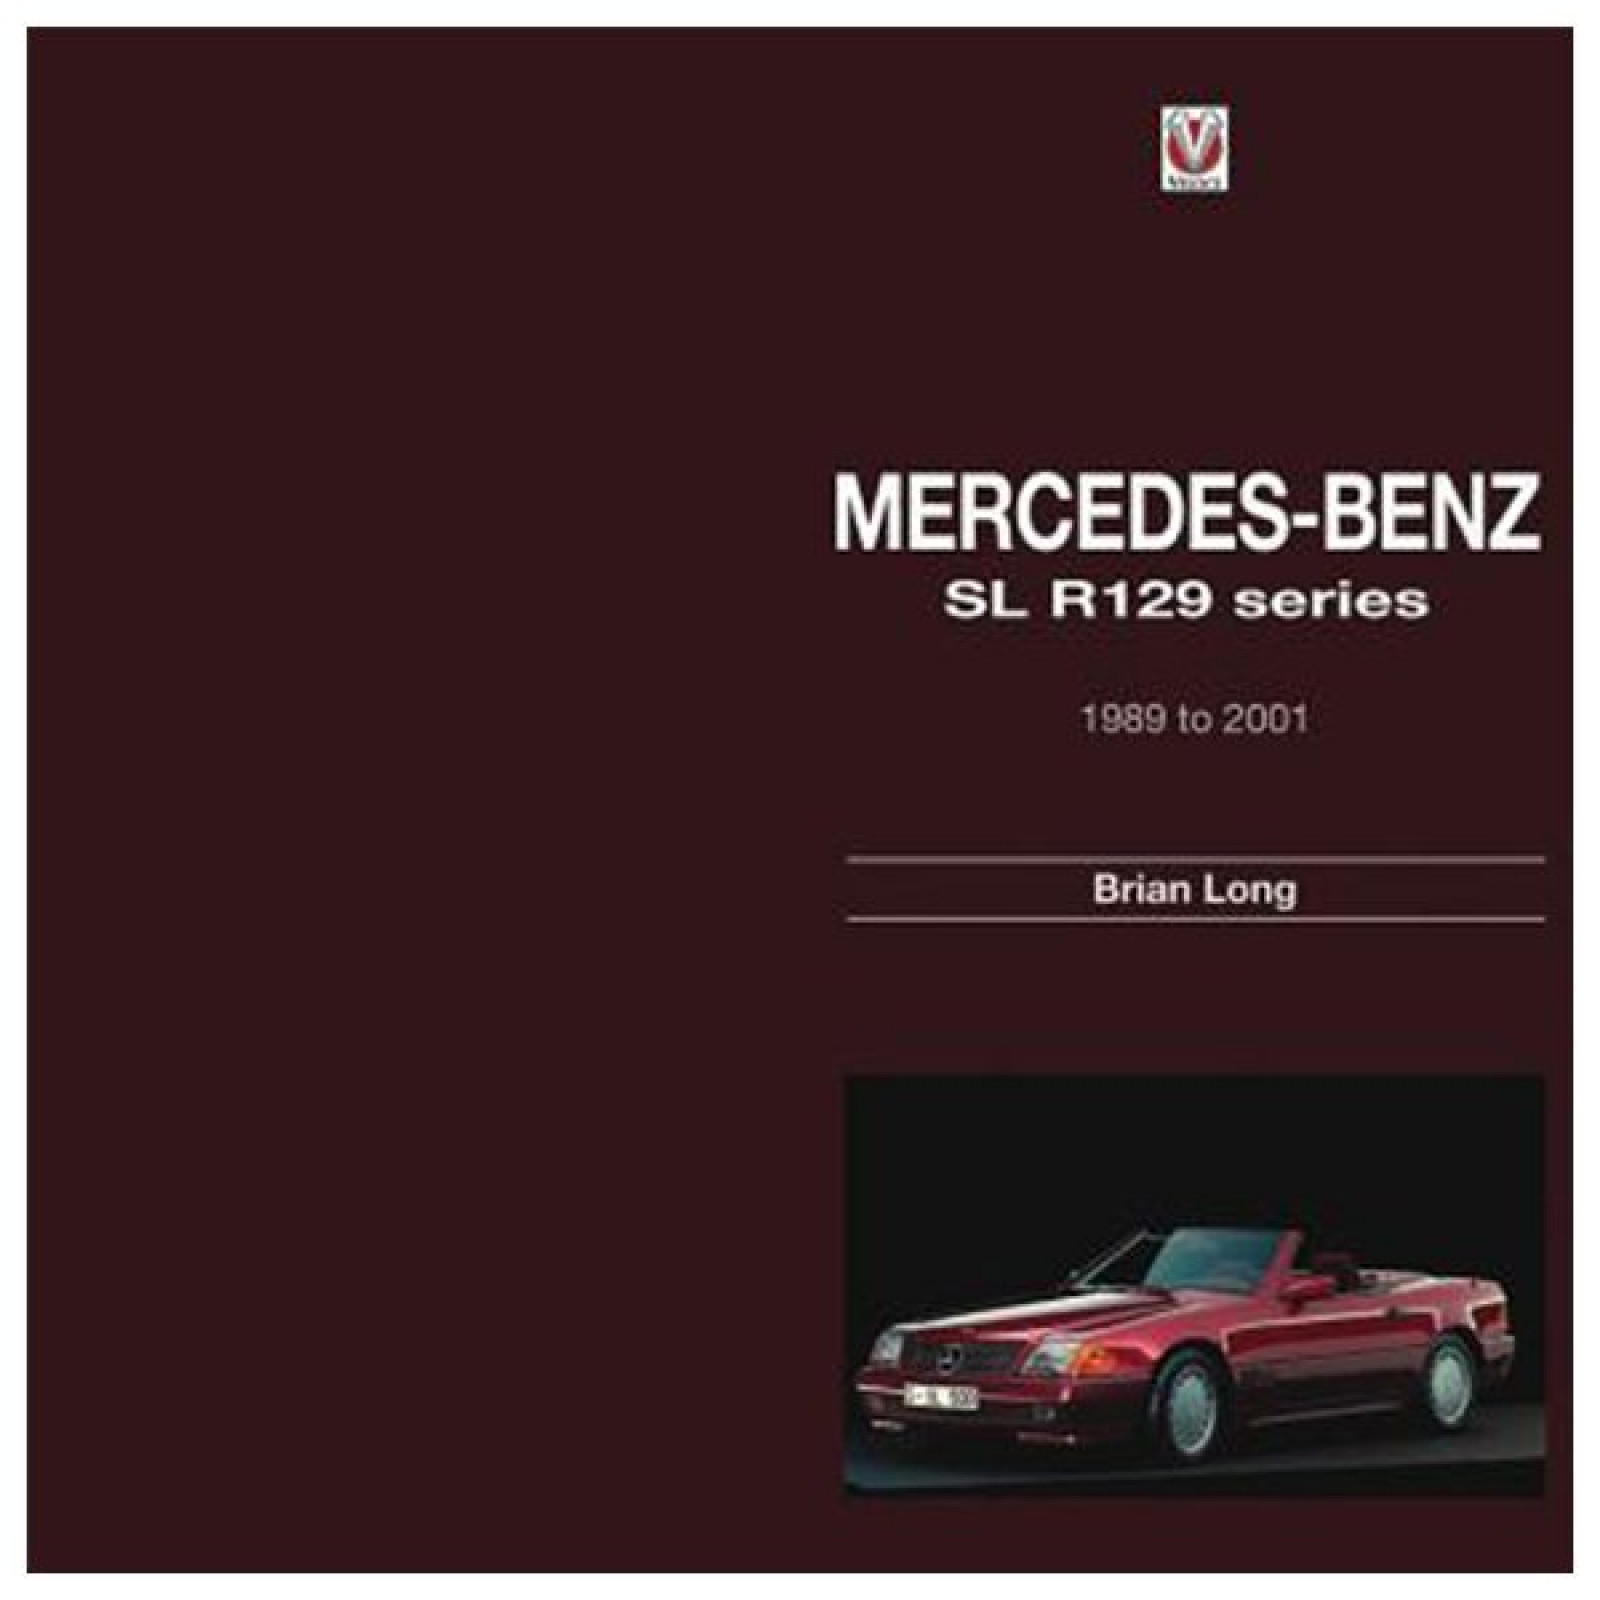 Mercedes benz sl r129 series 1989 to 2001 book by brian for Mercedes benz books